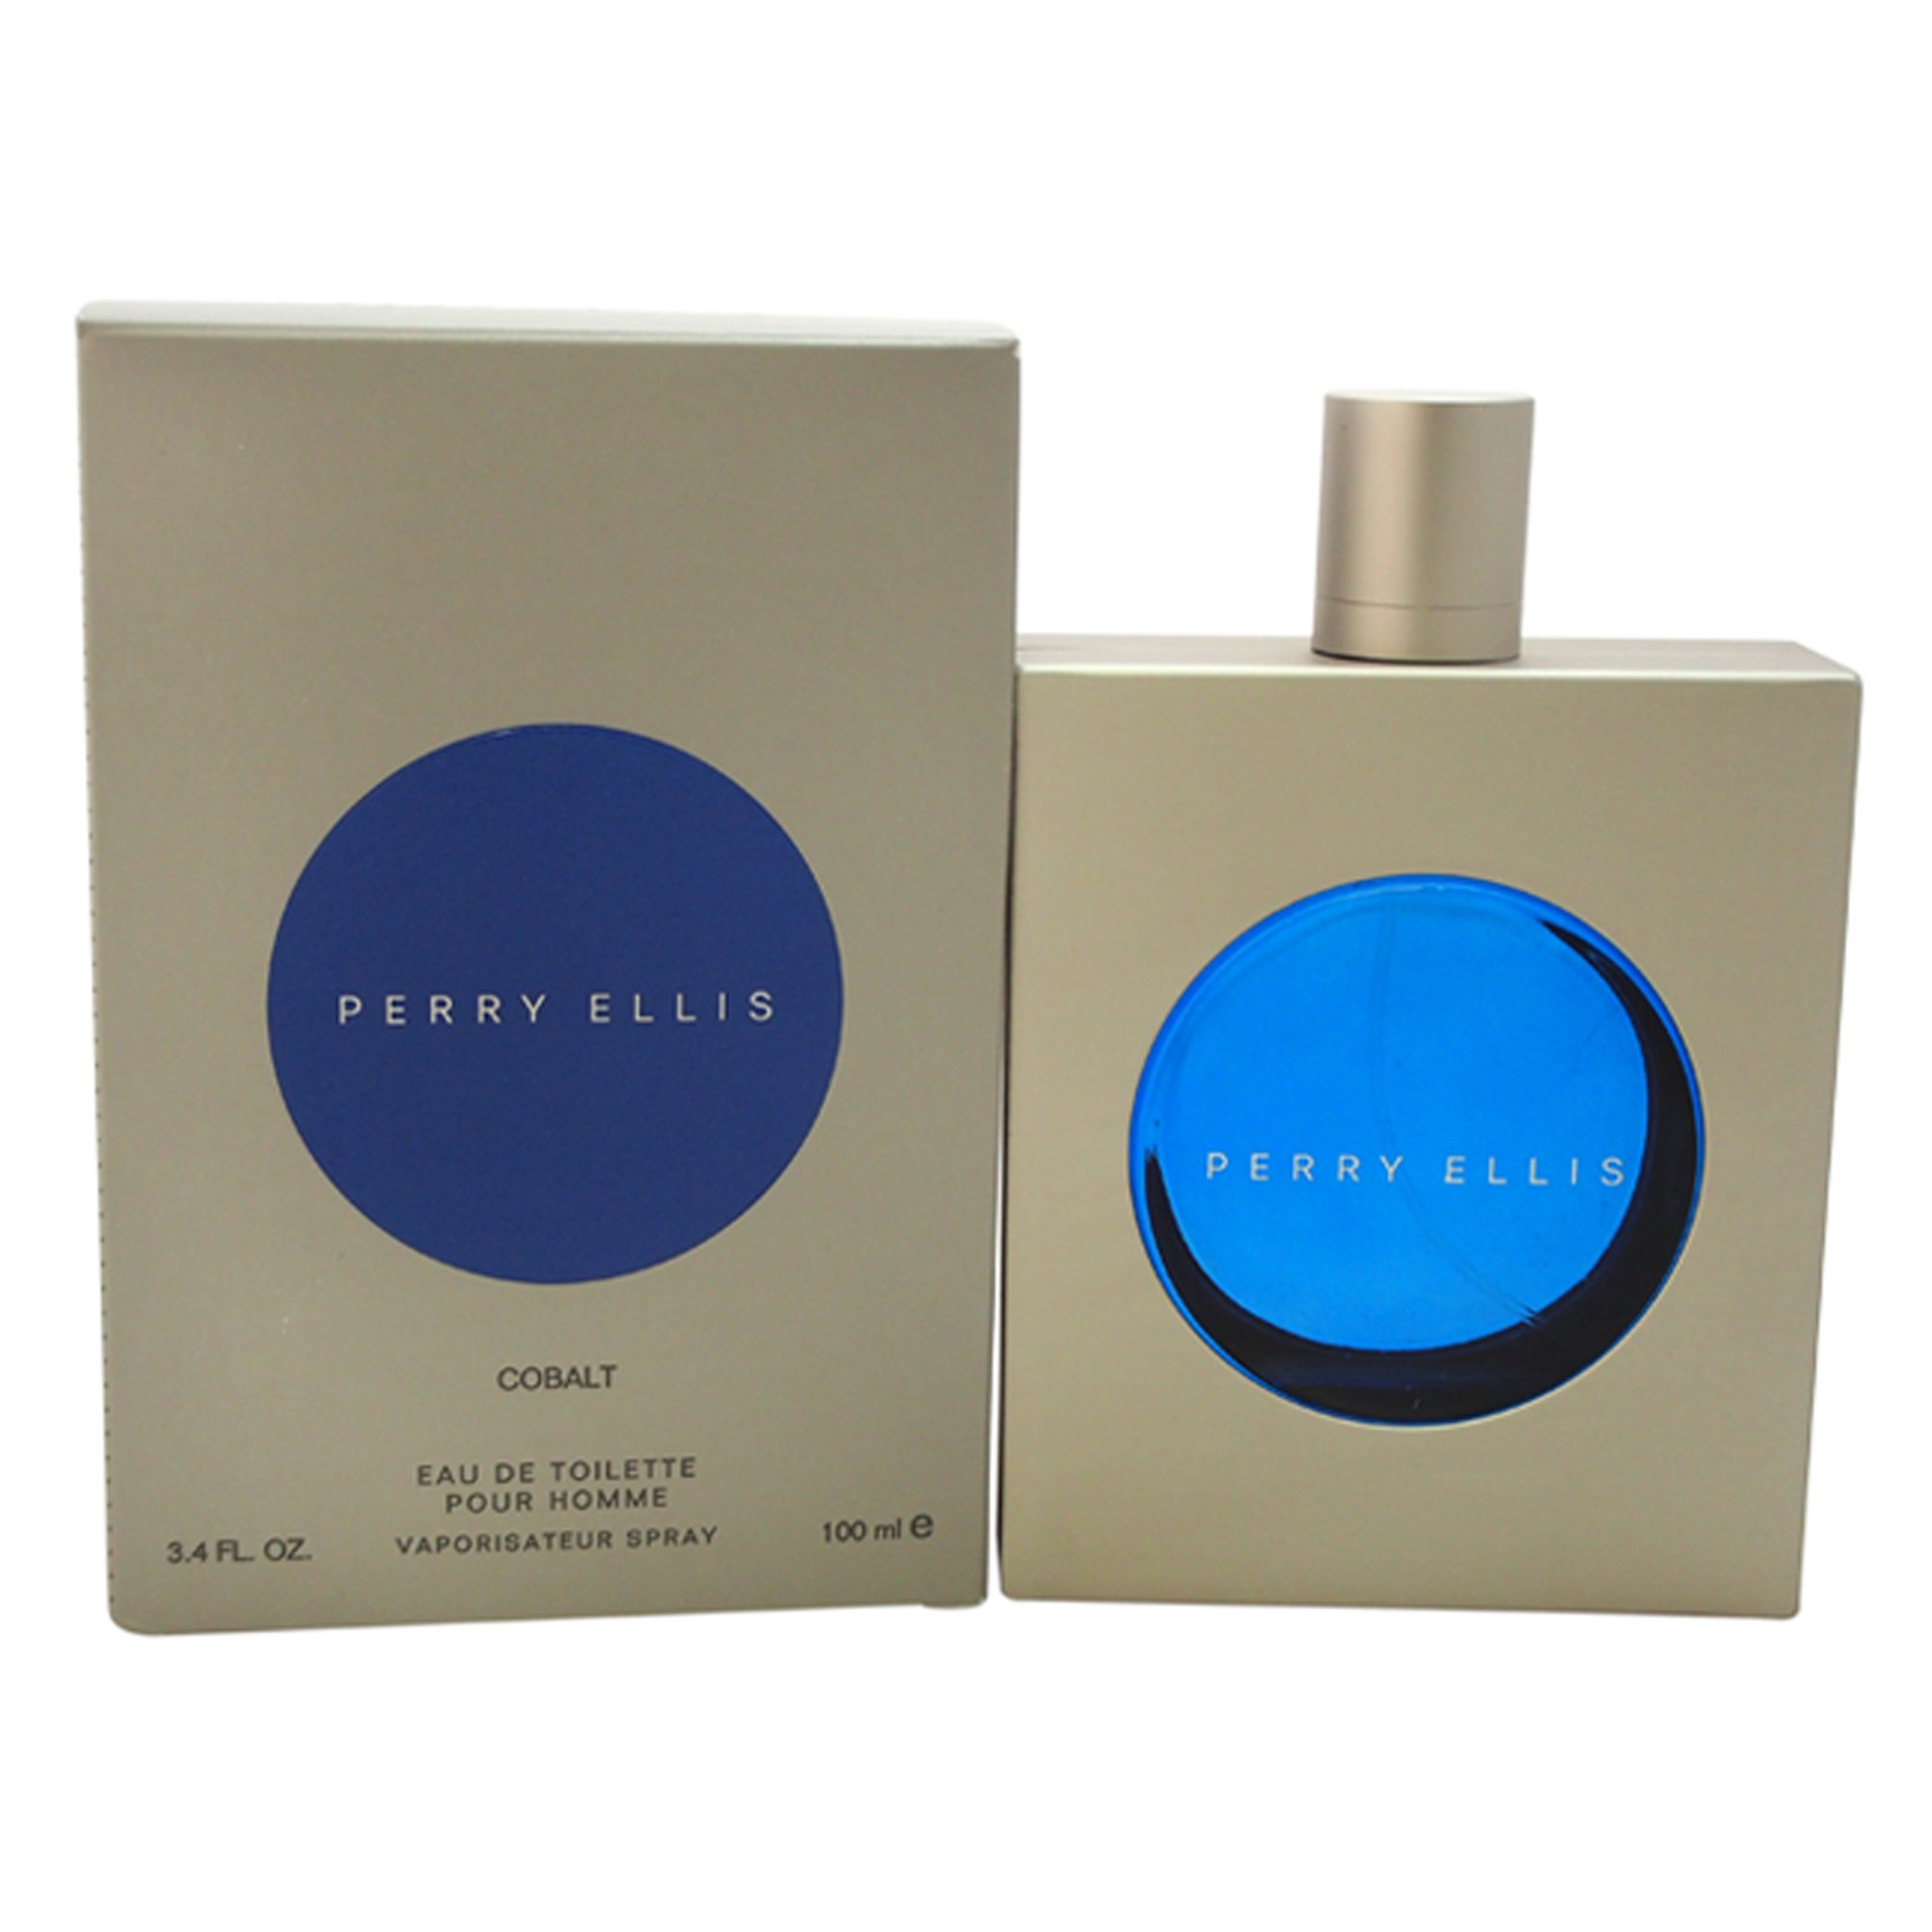 Perry Ellis Cobalt for Men, 3.4 fl oz EDT by Perry Ellis